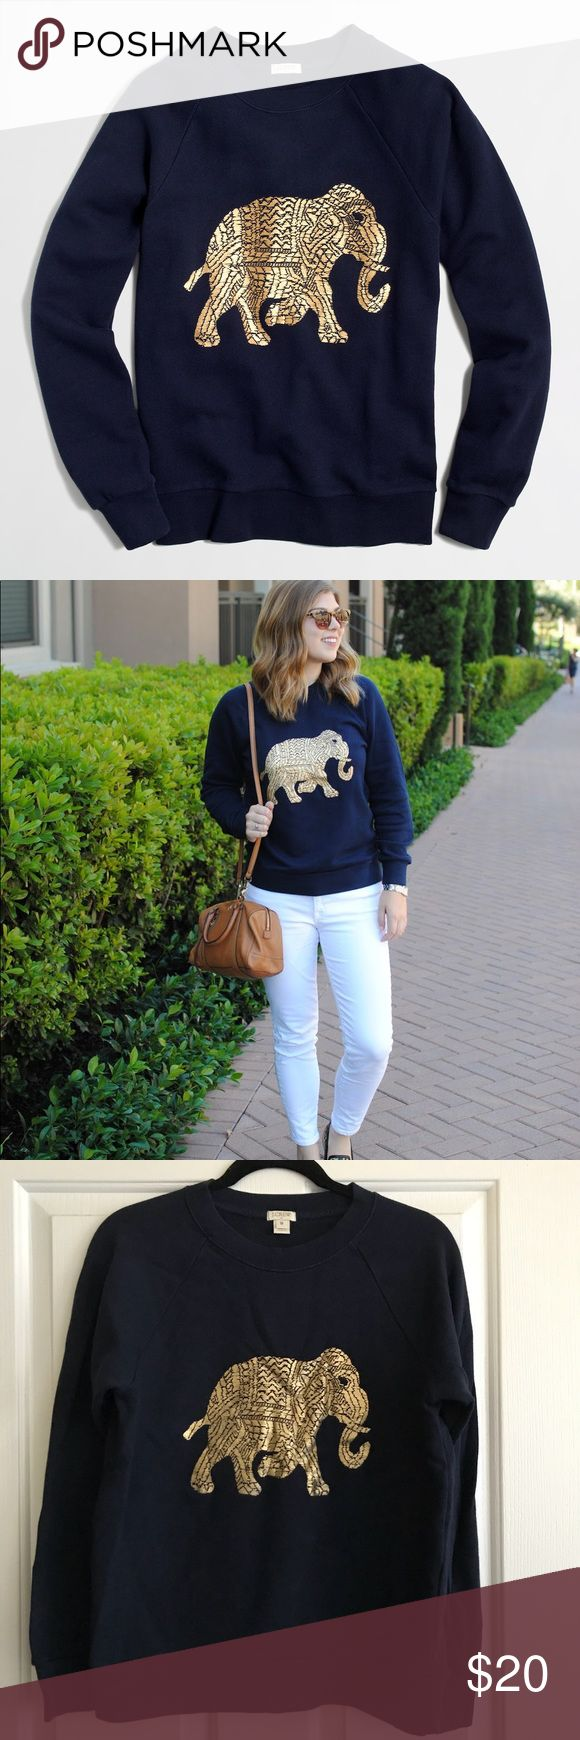 JCREW Elephant Sweater Metallic elephant sweatshirt. Navy color with metallic gold. Size Medium. Worn once. J. Crew Factory Sweaters Crew & Scoop Necks